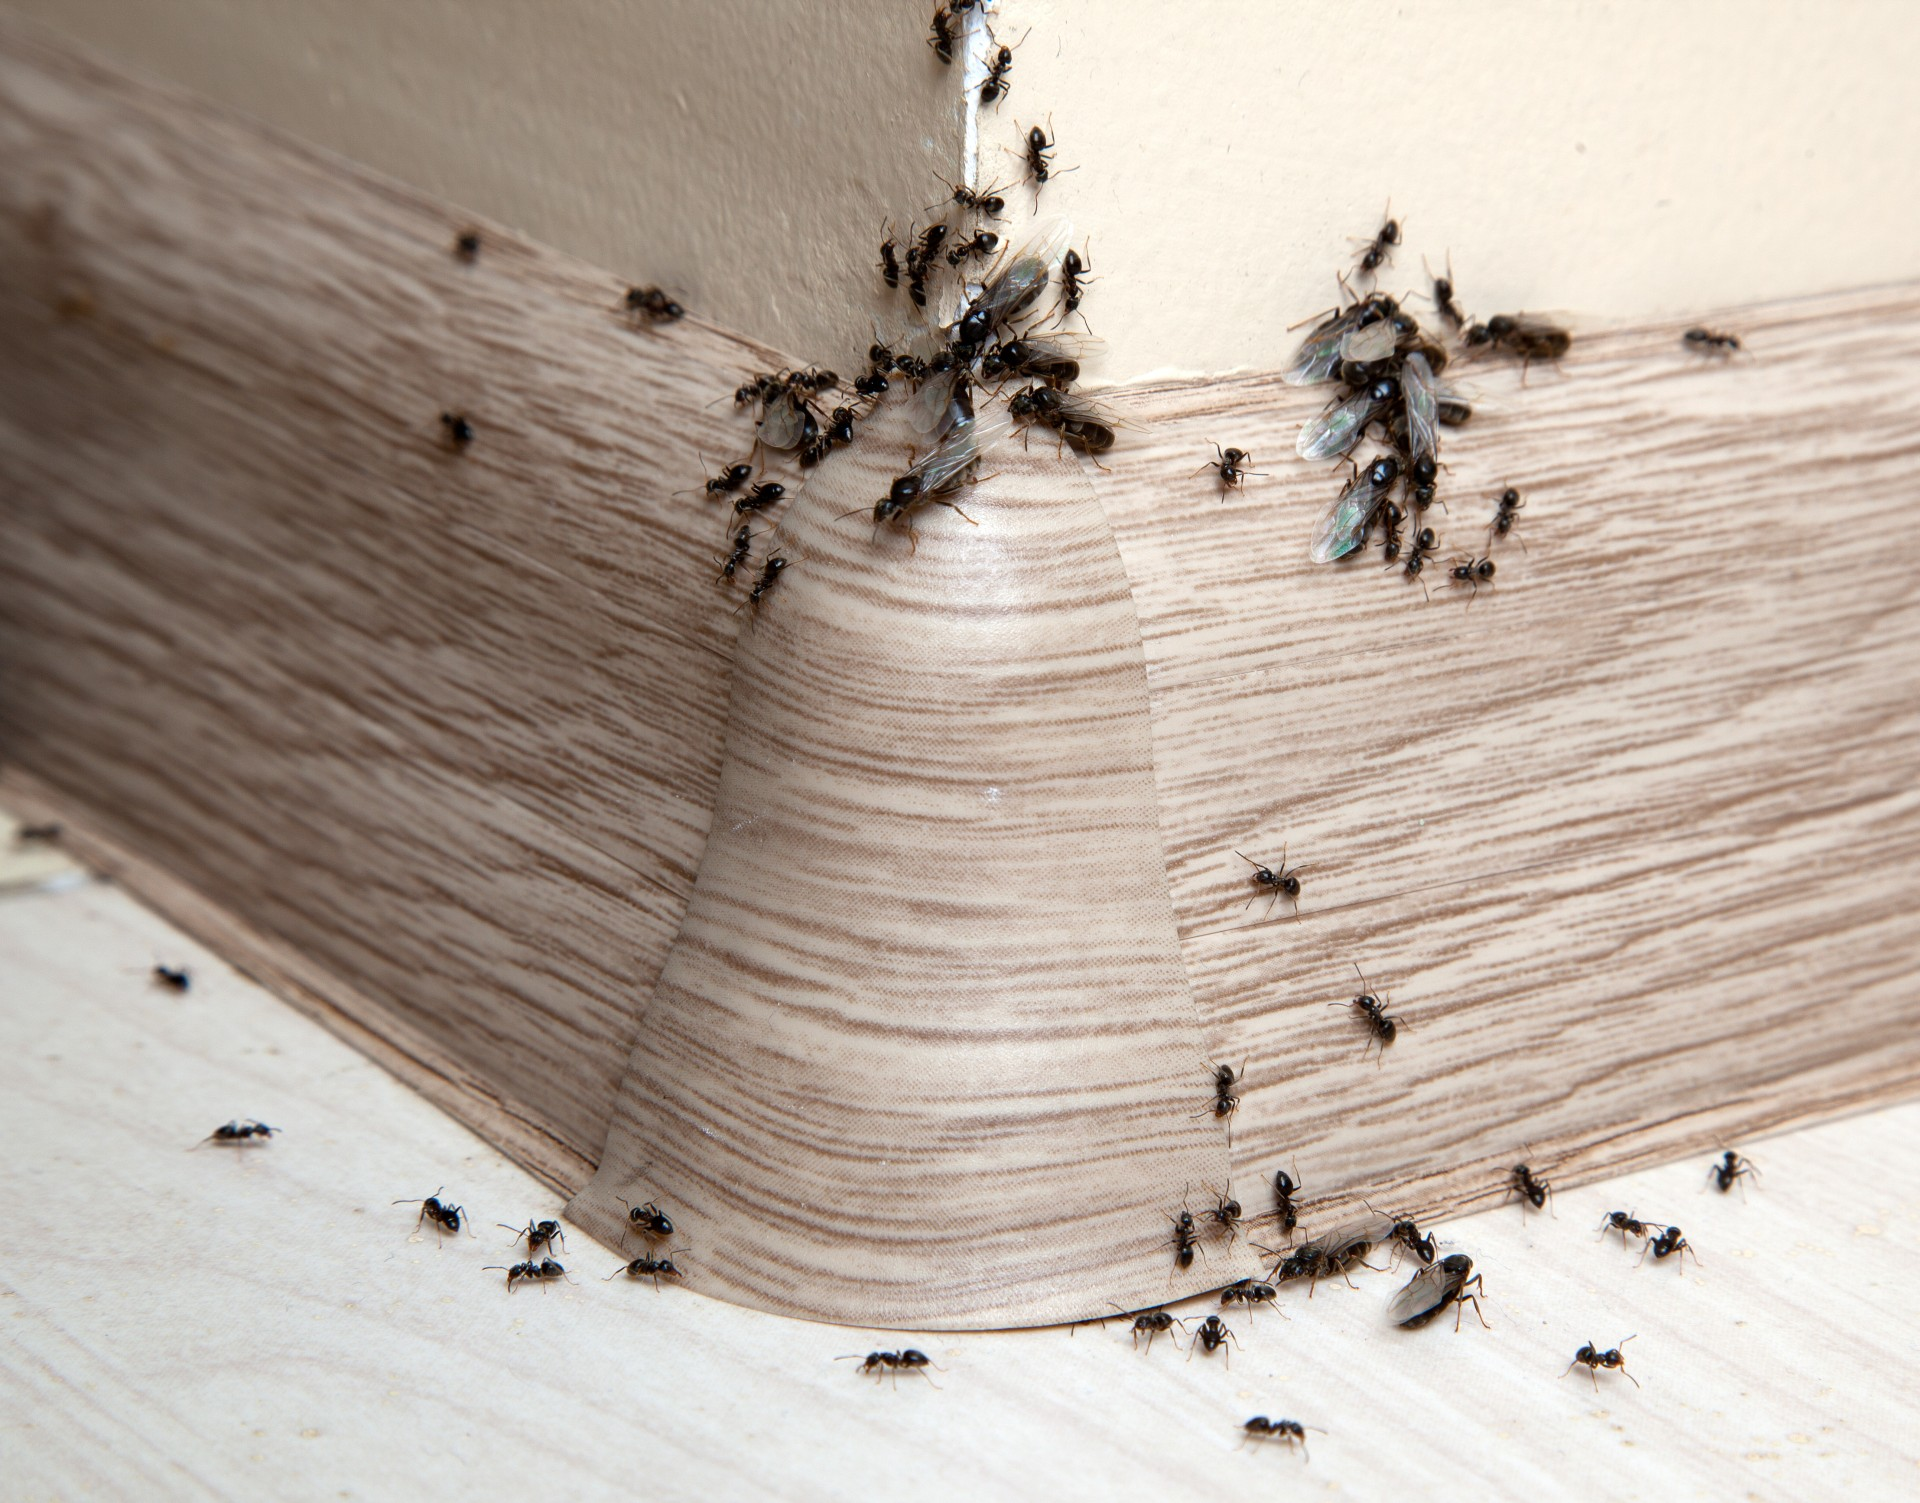 Ant Infestation, Pest Control in Brompton, SW3. Call Now 020 8166 9746